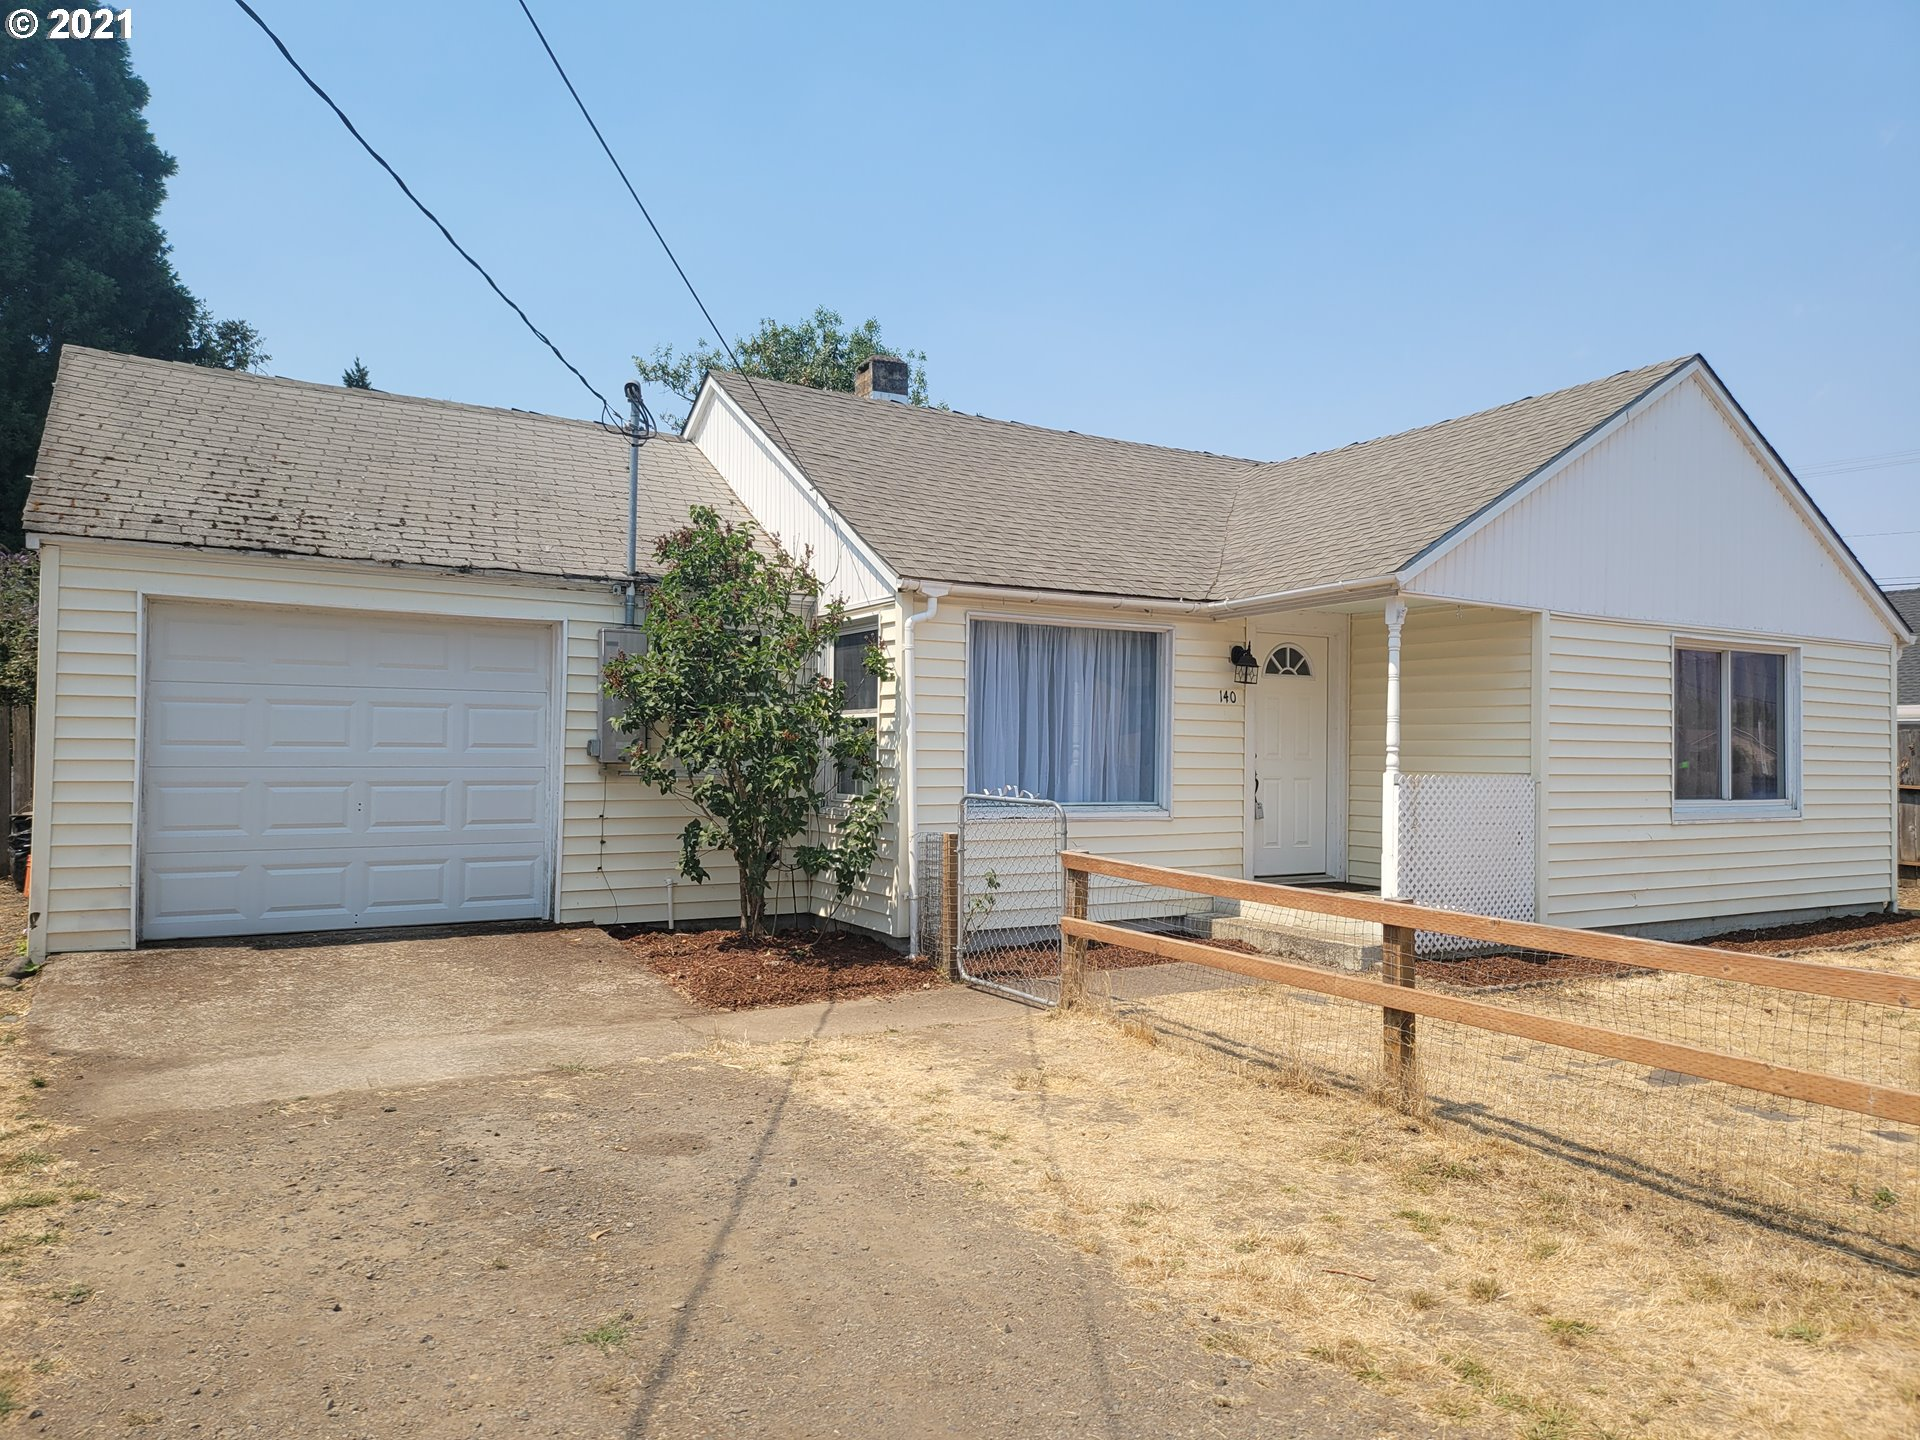 140 S 51ST ST, Springfield OR 97478